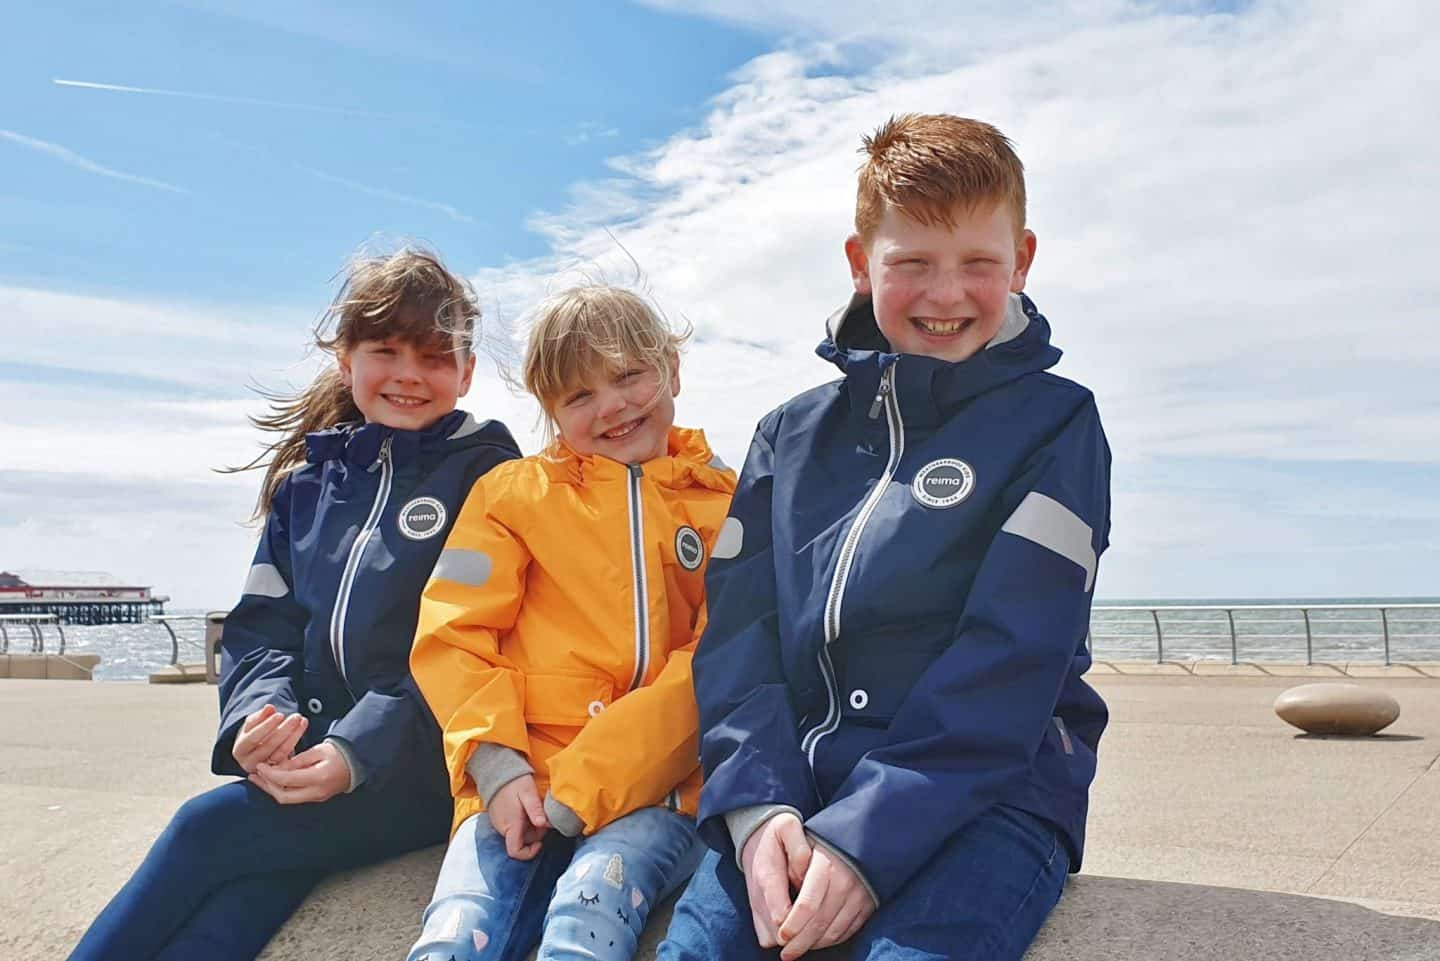 kids at seaside wearing reimatec waterproof jacket